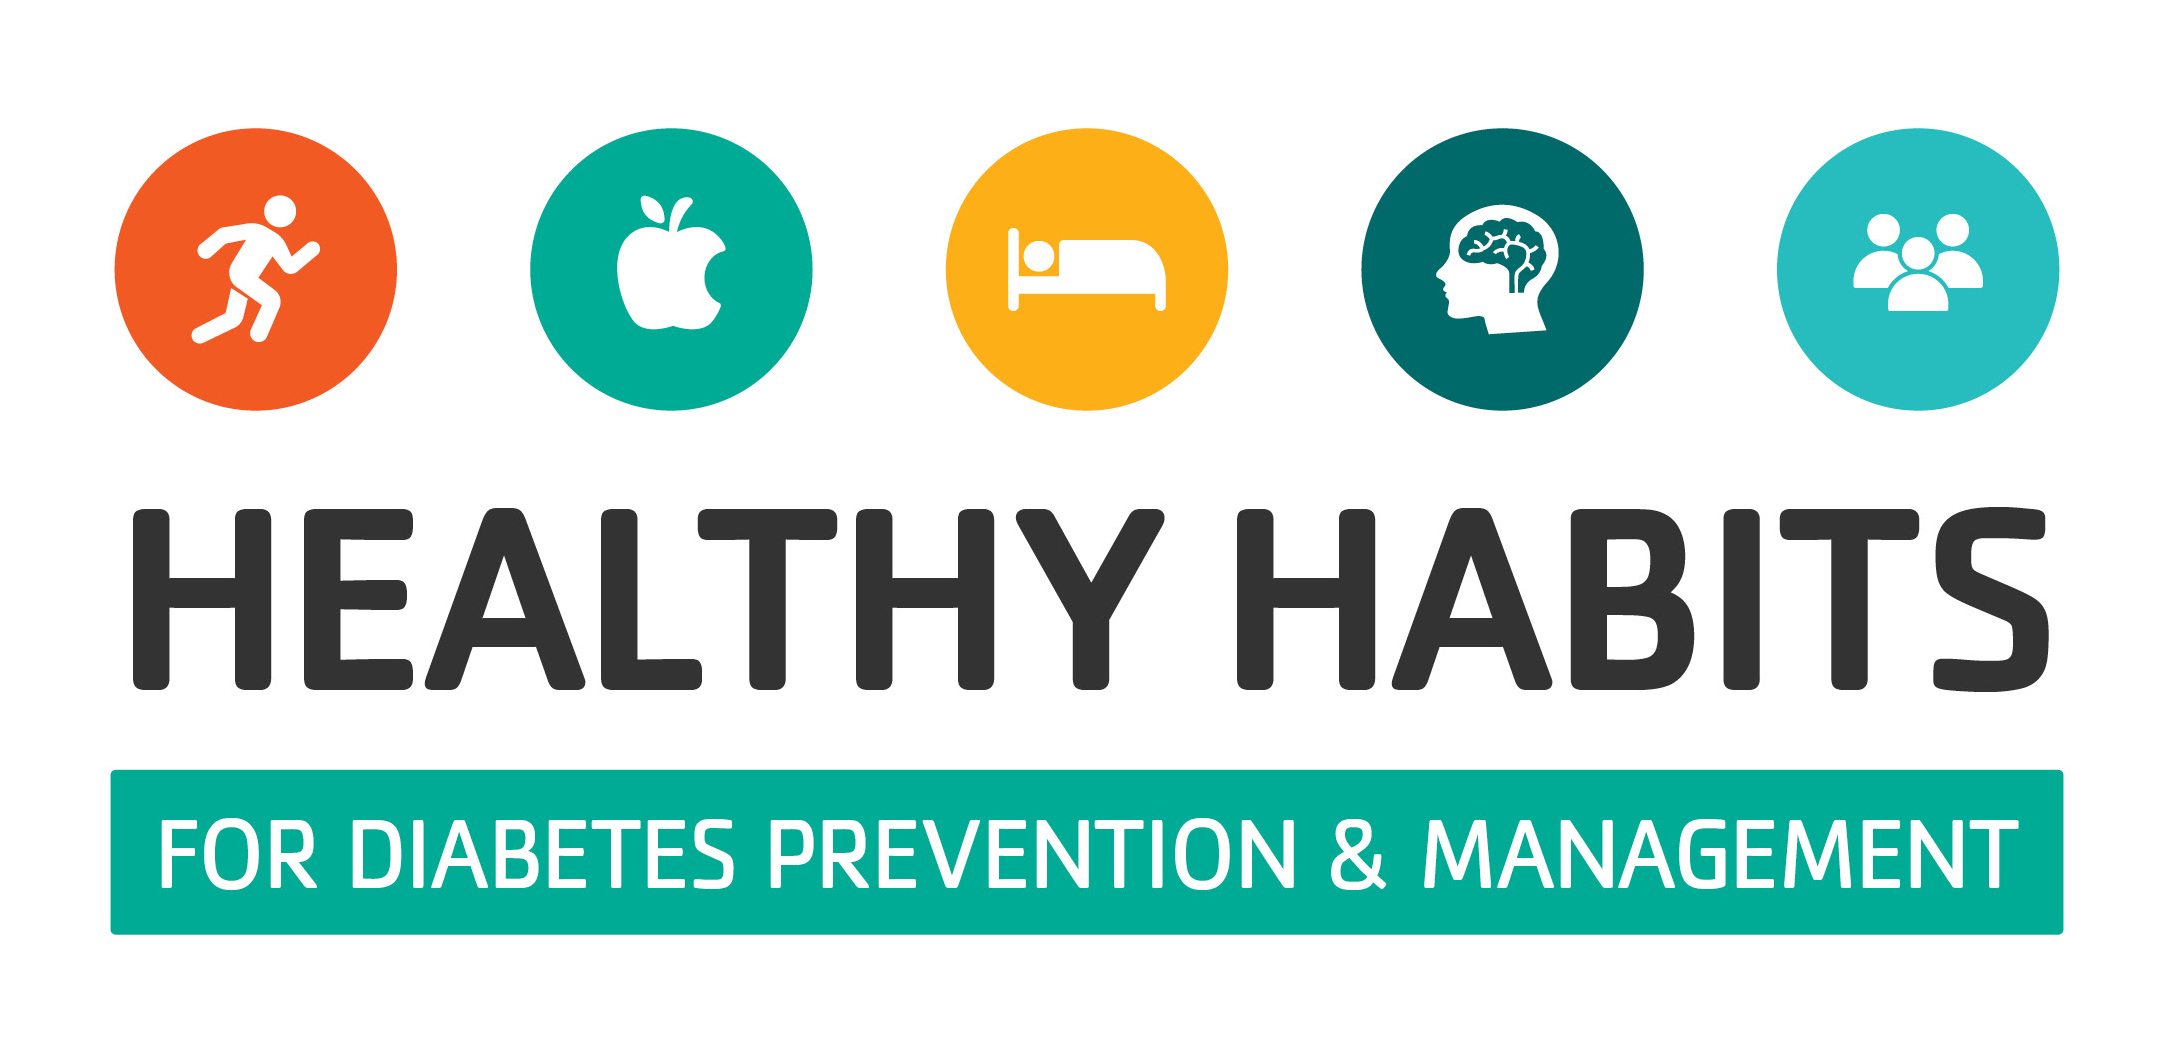 Healthy Habits for Diabetes Prevention and Management